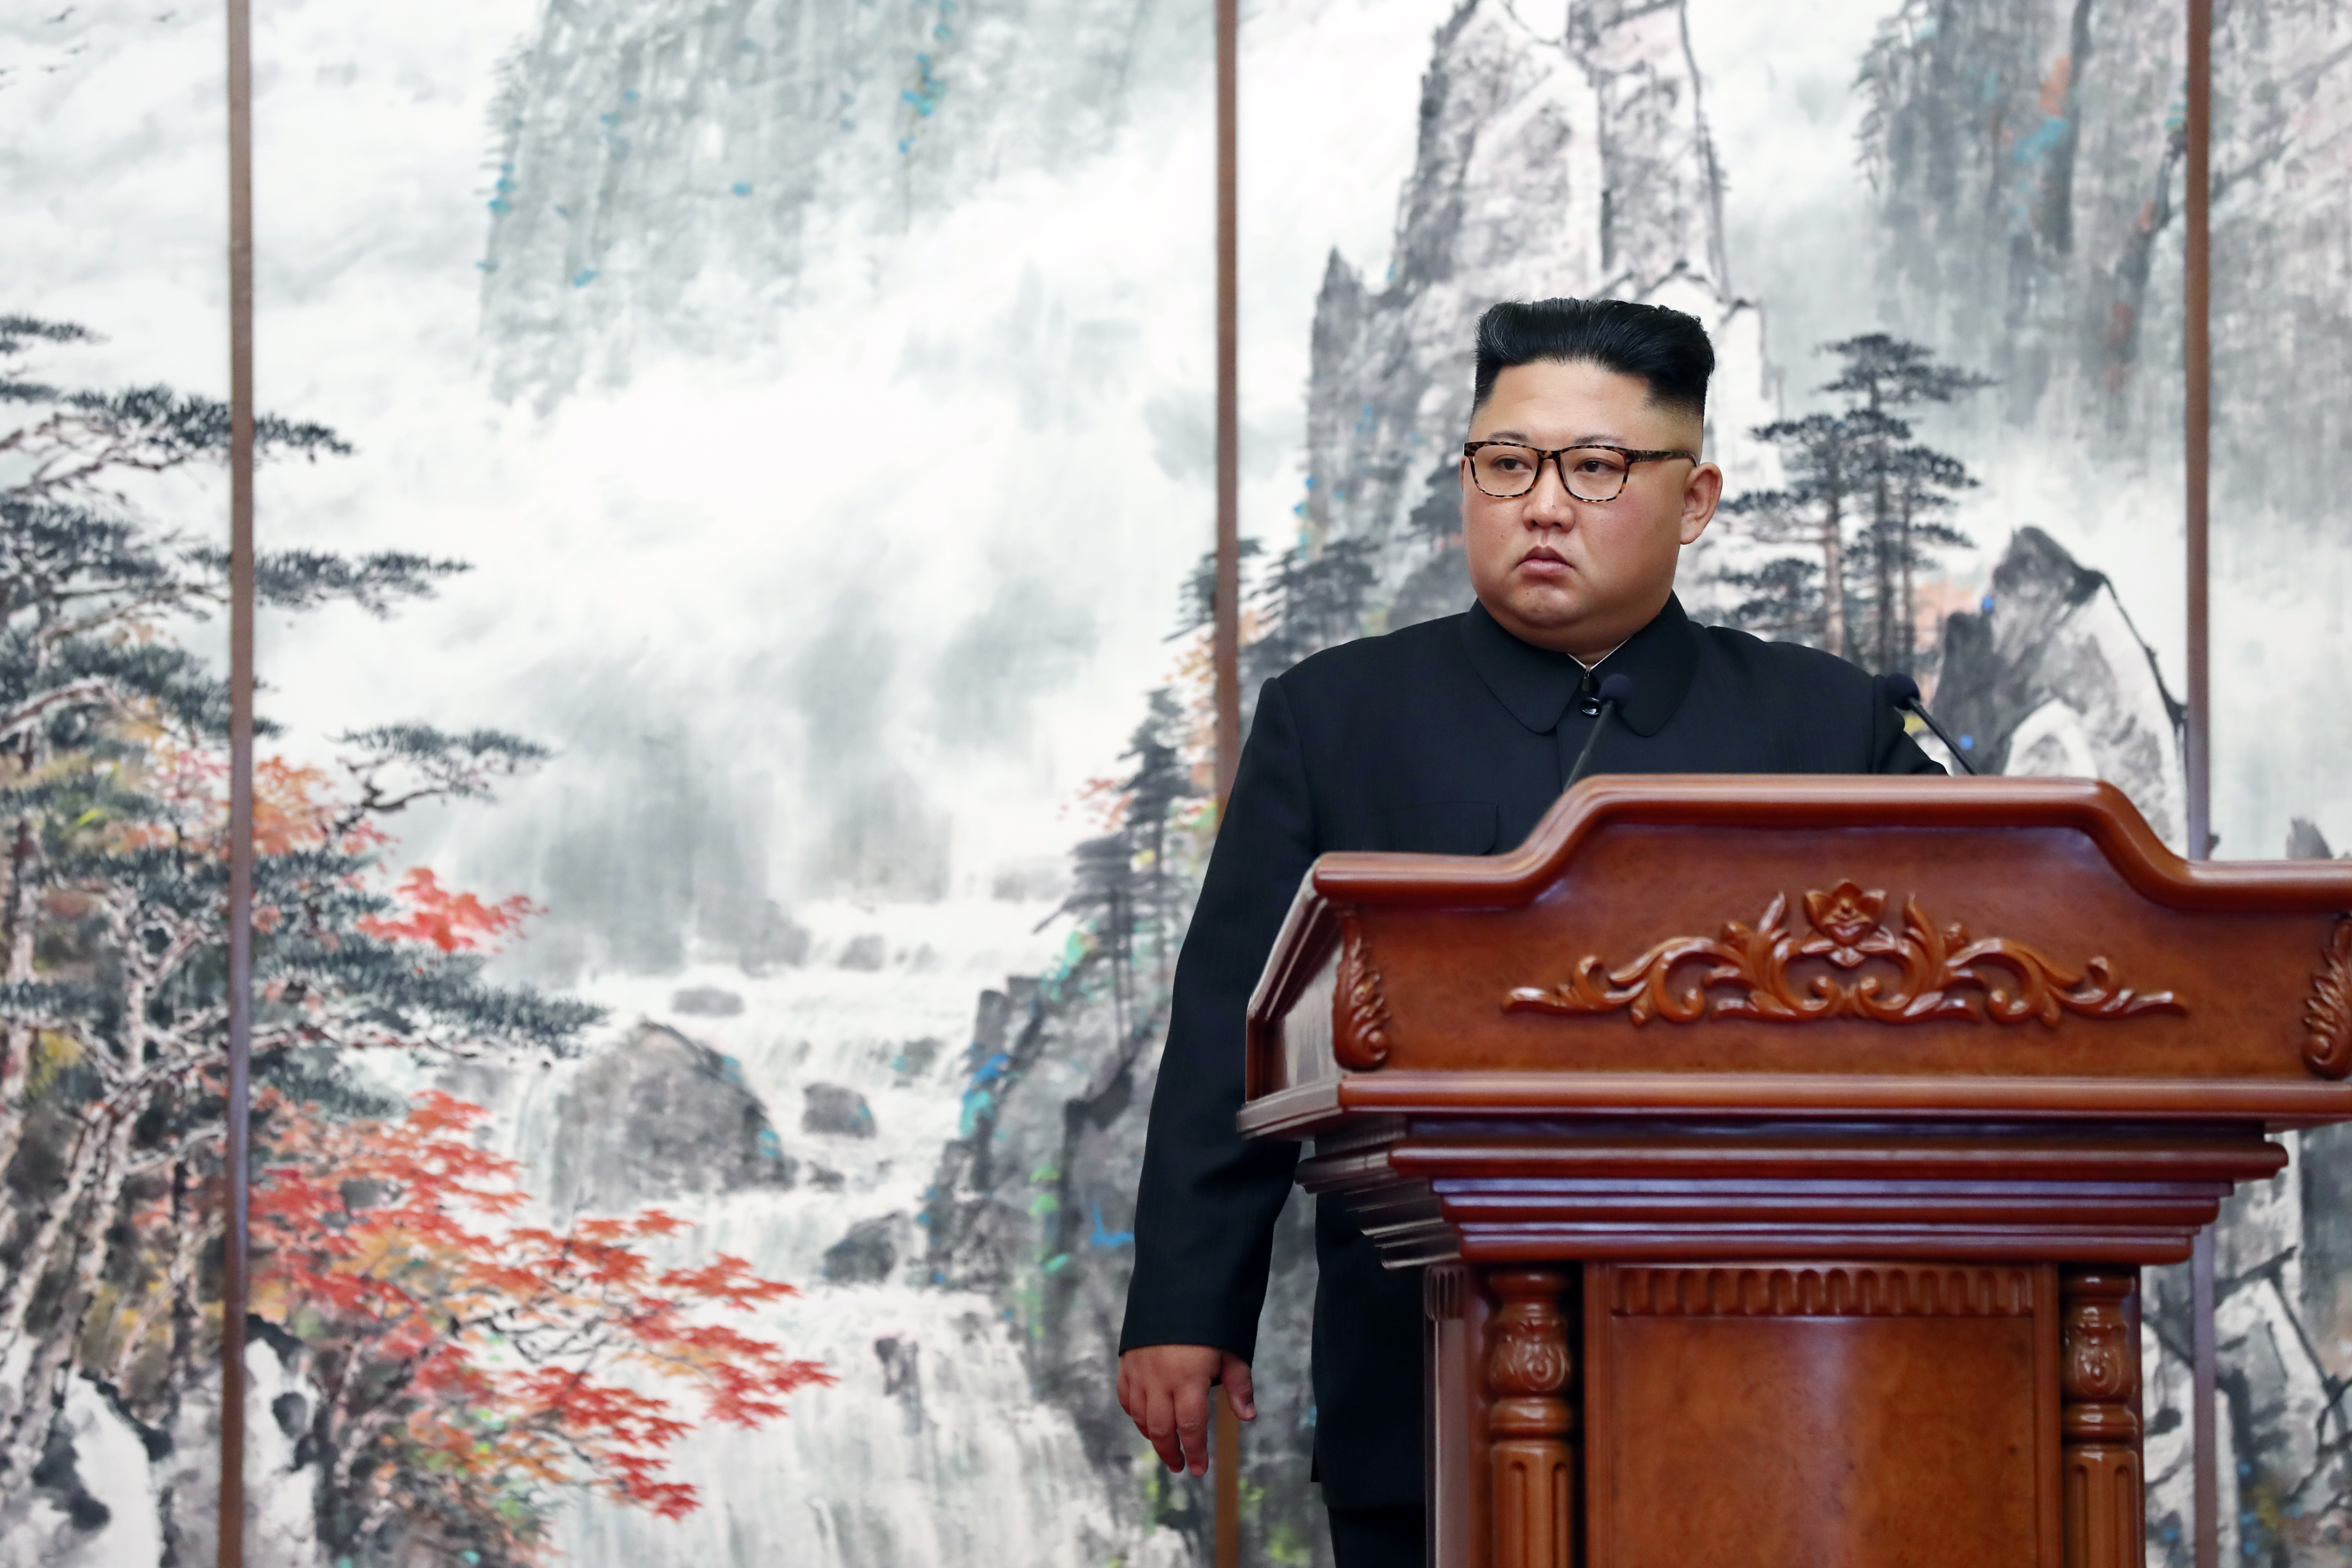 North Korean leader Kim Jong Un attends a joint press conference with South Korean President Moon Jae-in at the Paekhwawon State Guesthouse in Pyongyang, North Korea on Sept. 19, 2018.